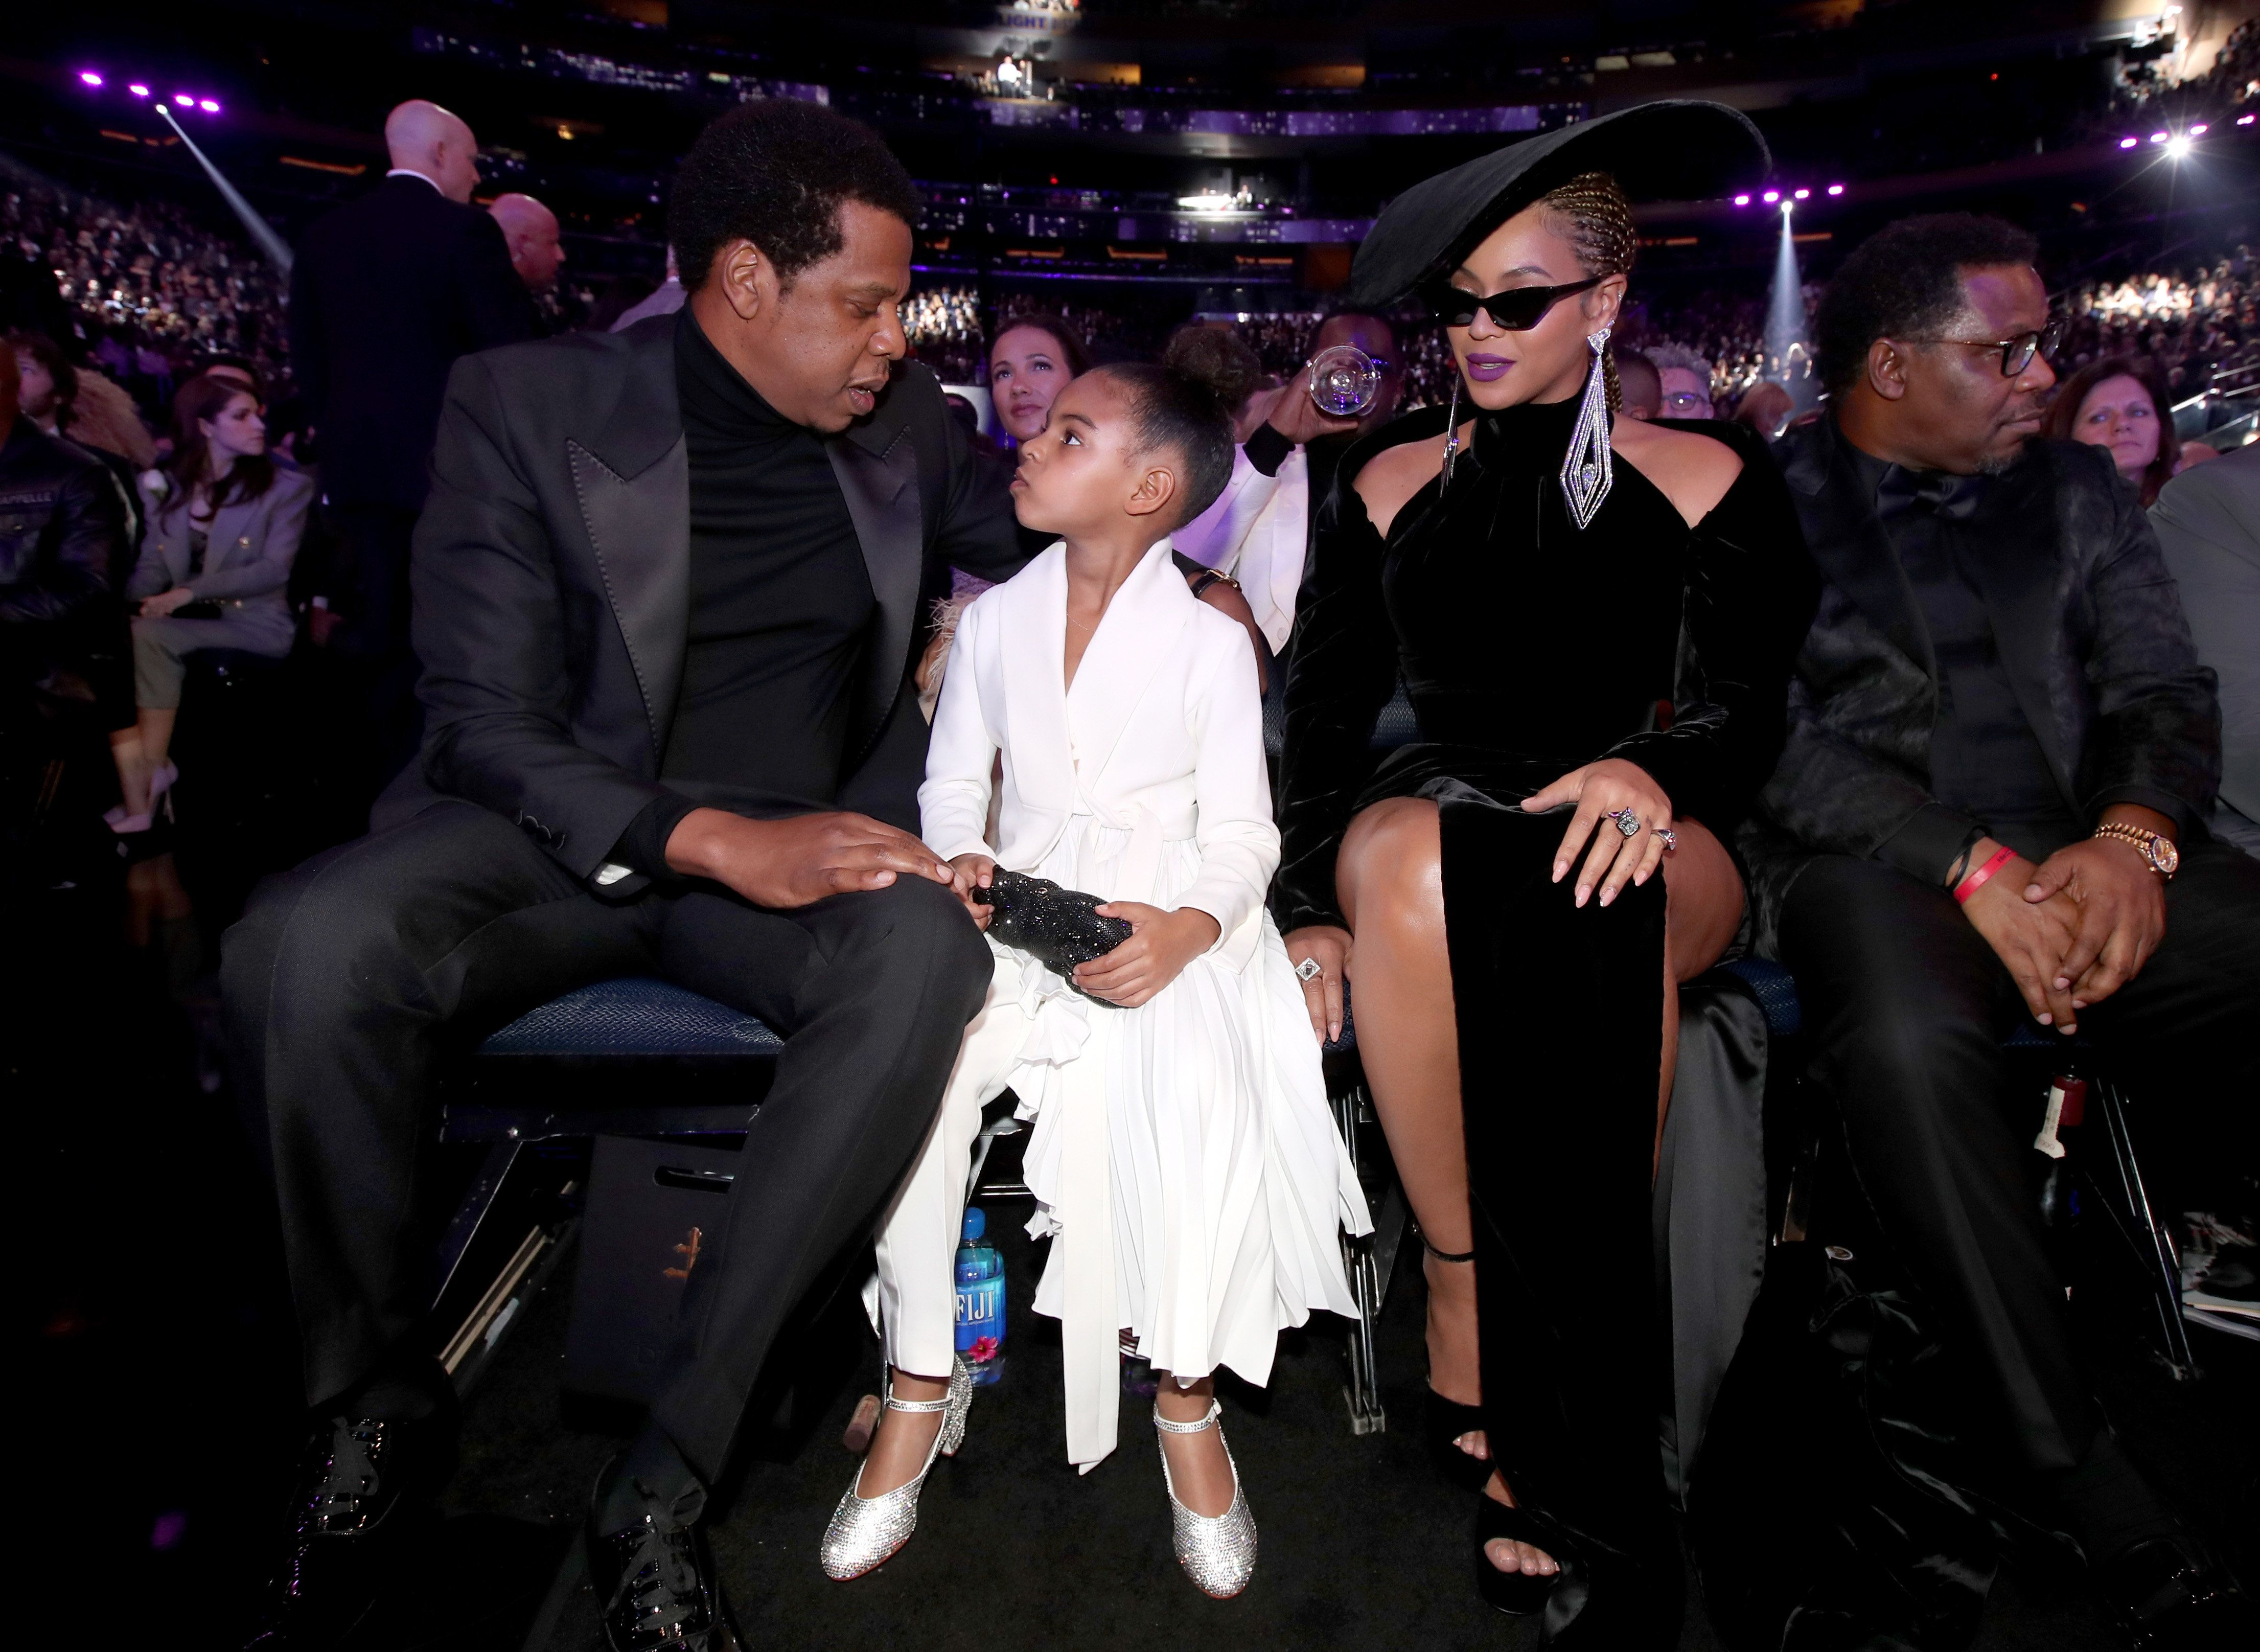 Blue Ivy Steals The Show At The Grammys, As She Shushes Beyoncé And